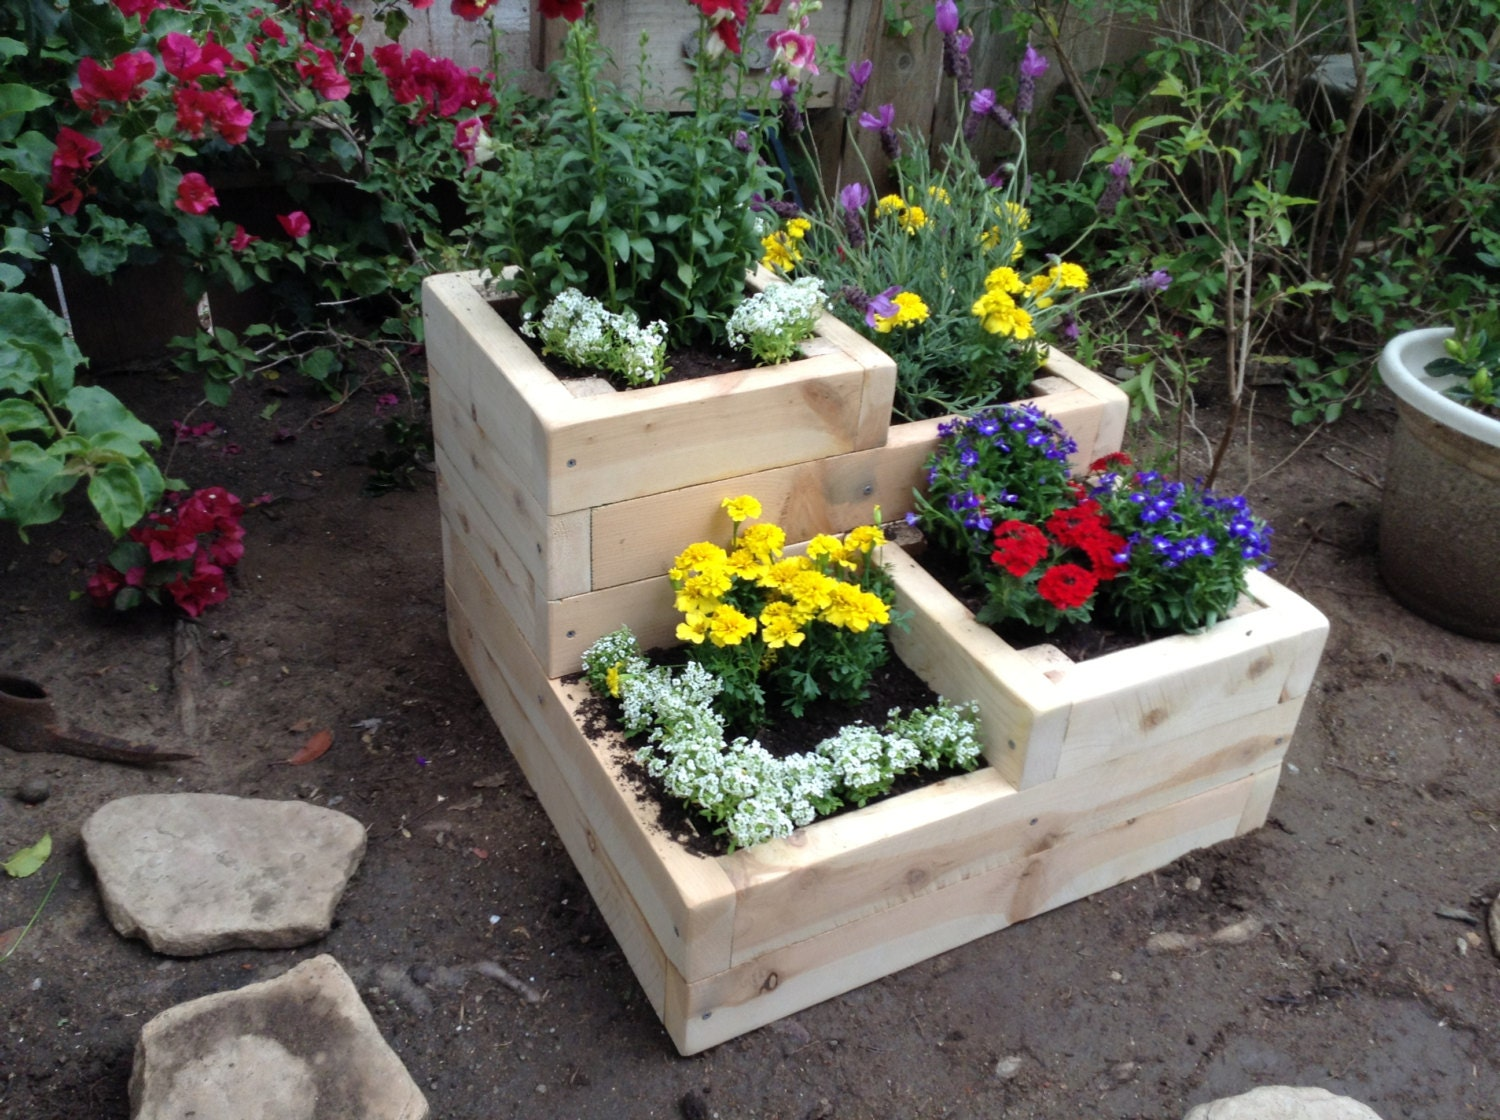 garden design with flower garden box designs box for herbs flowers or v with backyard makeovers